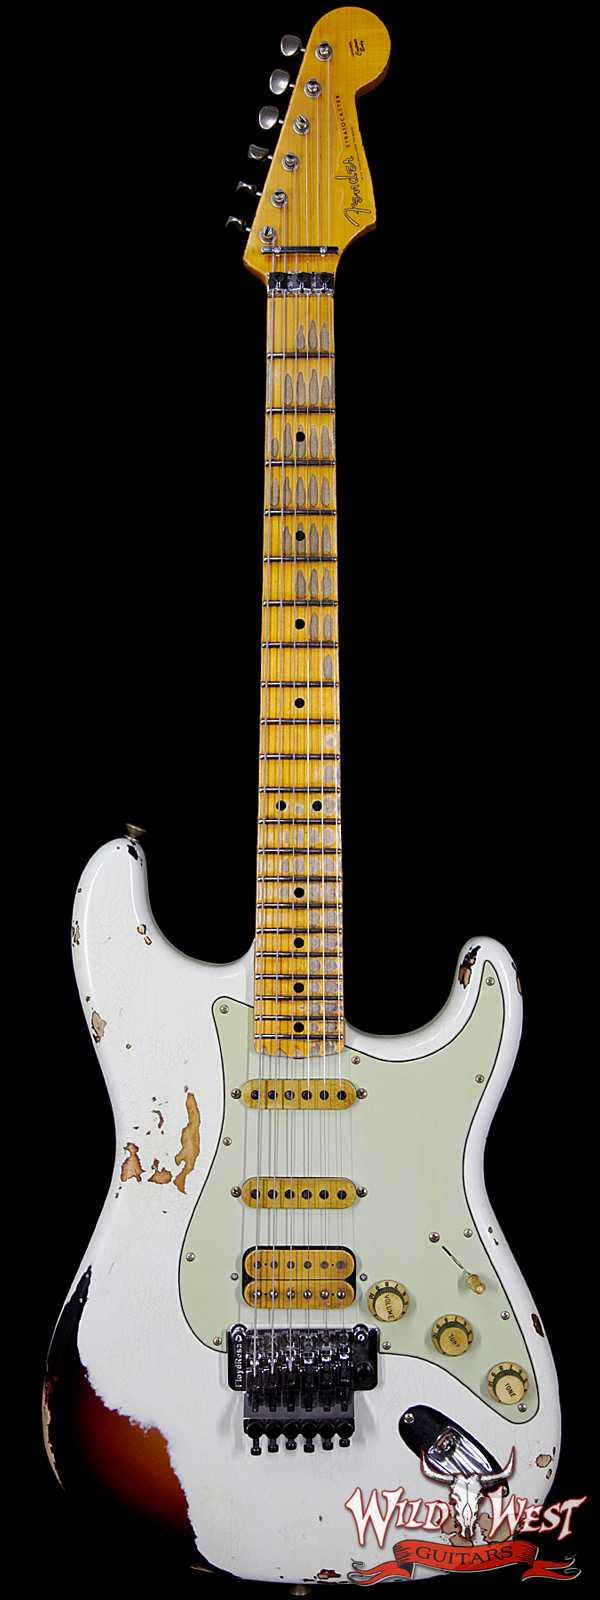 Fender Custom Shop White Lightning FR Stratocaster Heavy Relic Olympic White over 3 Tone Sunburst